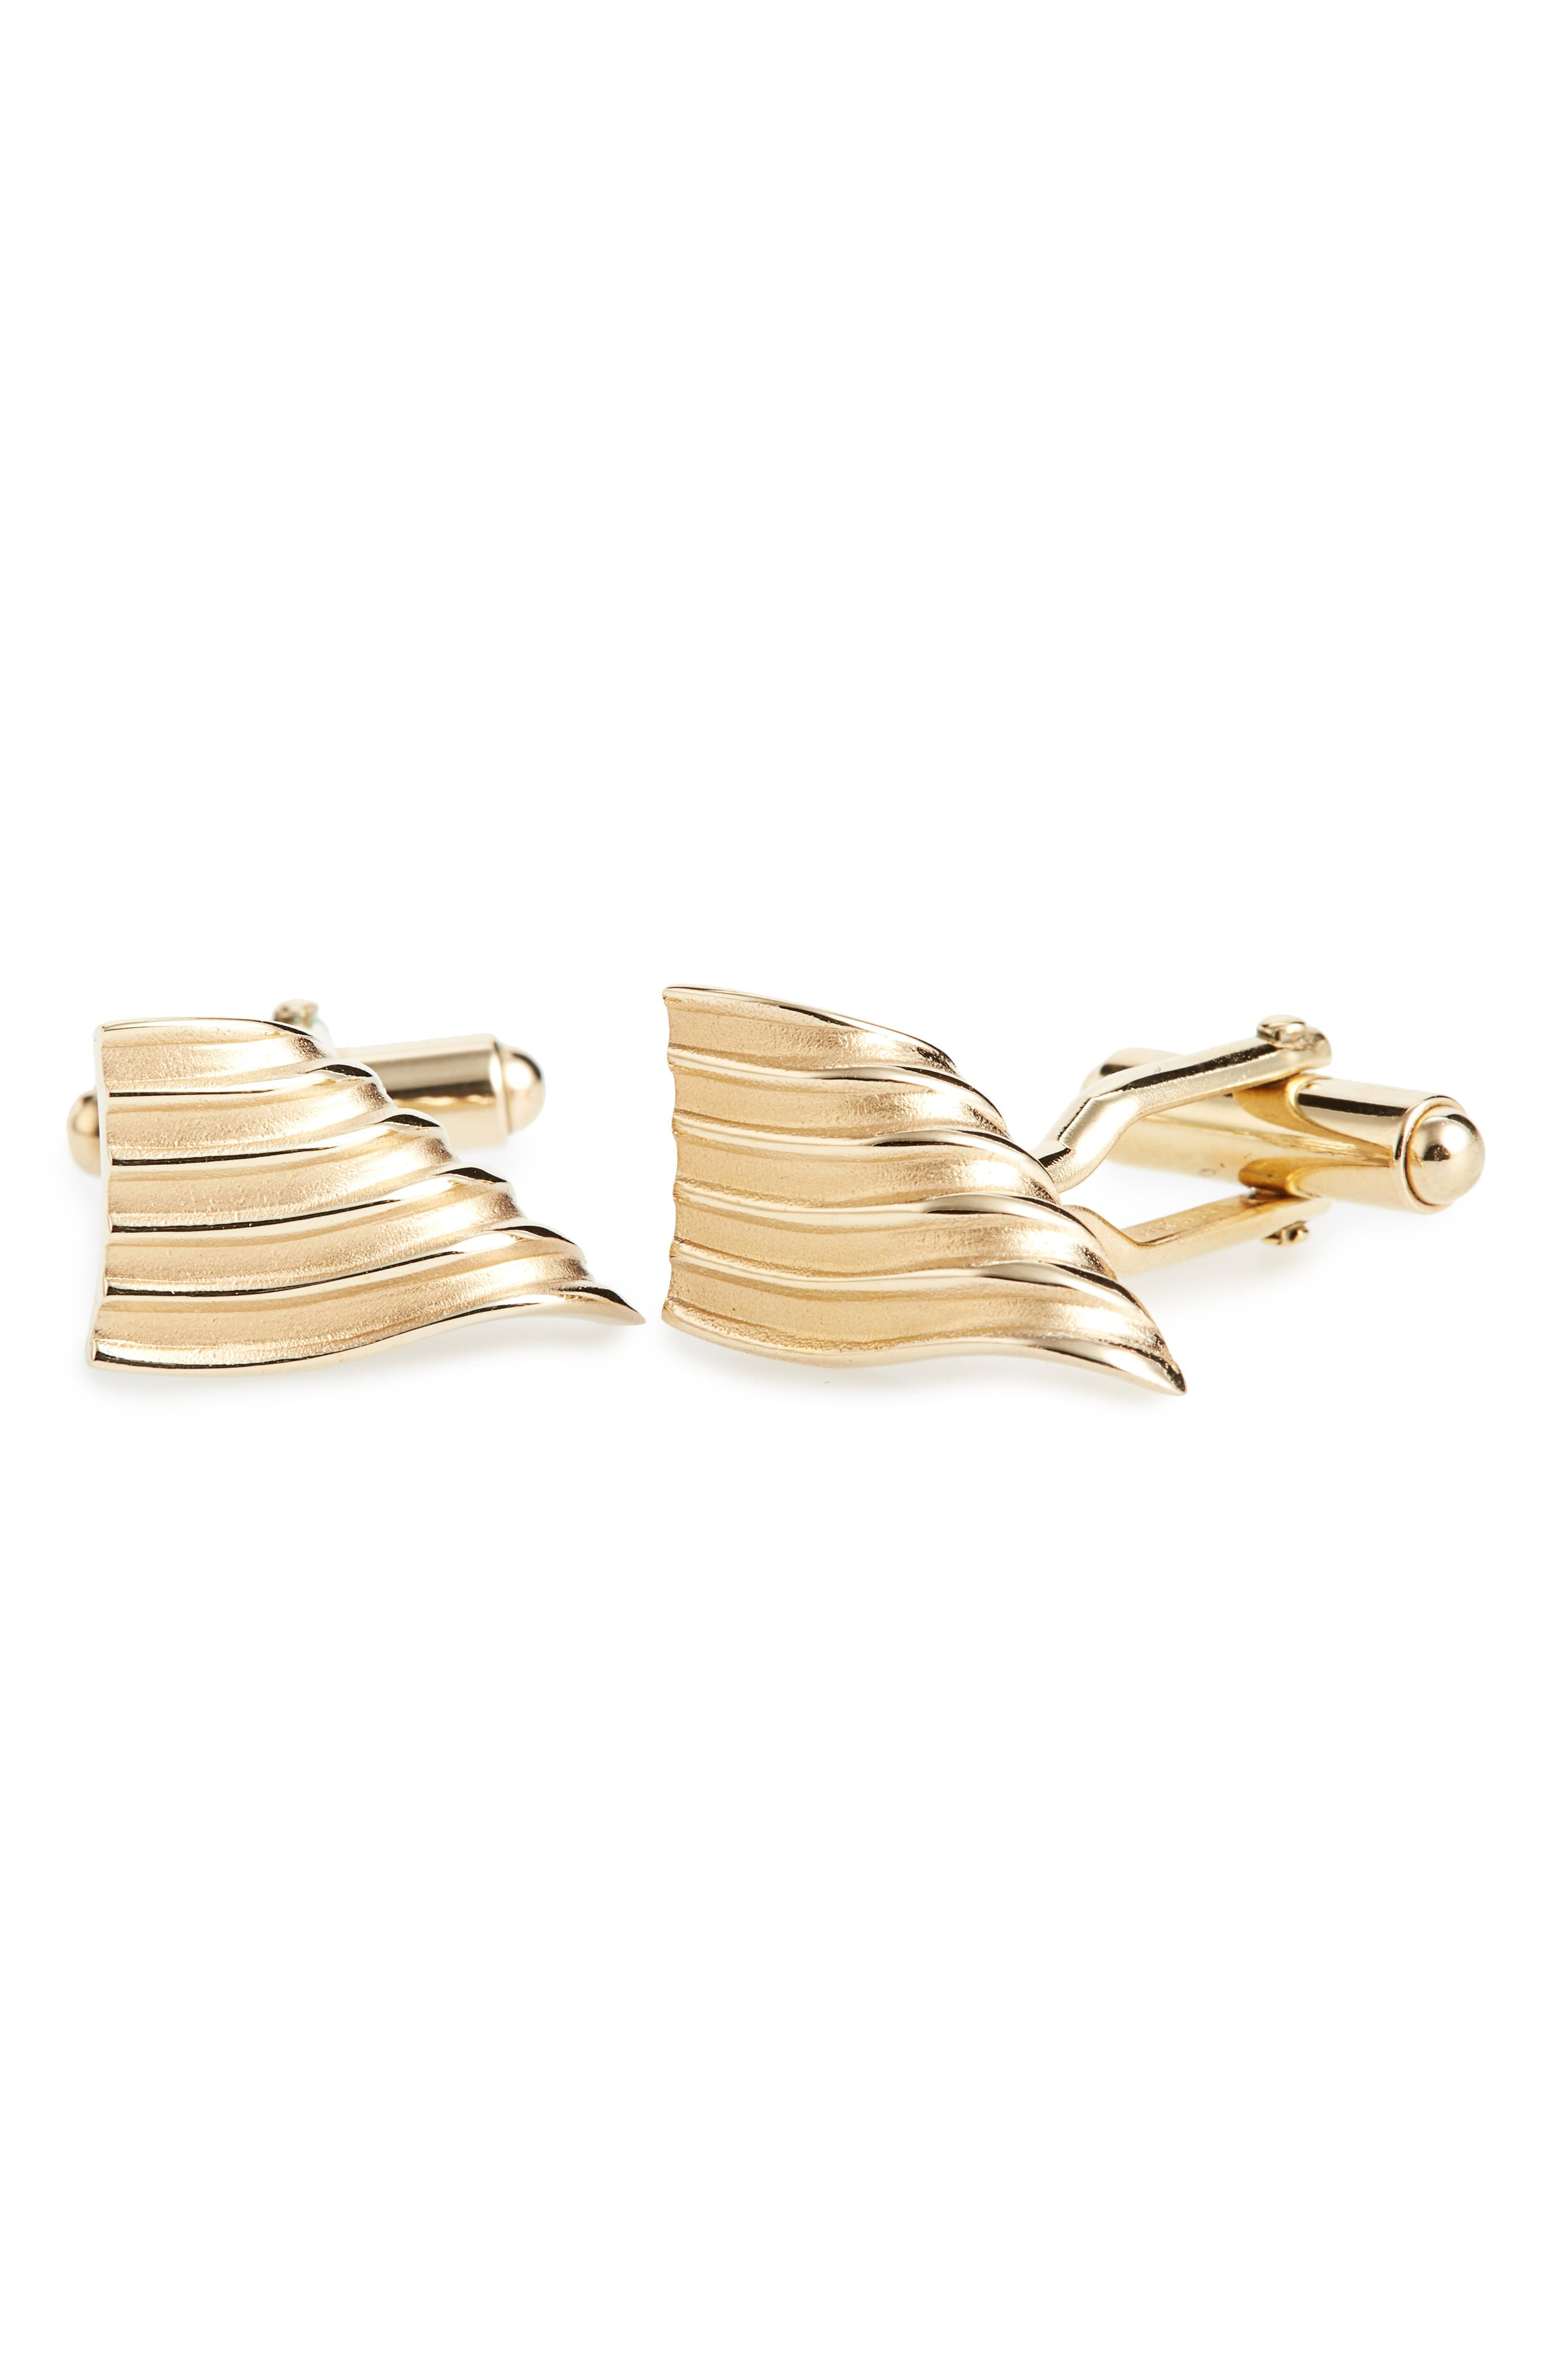 Main Image - Lanvin Curved & Grooved Cuff Links